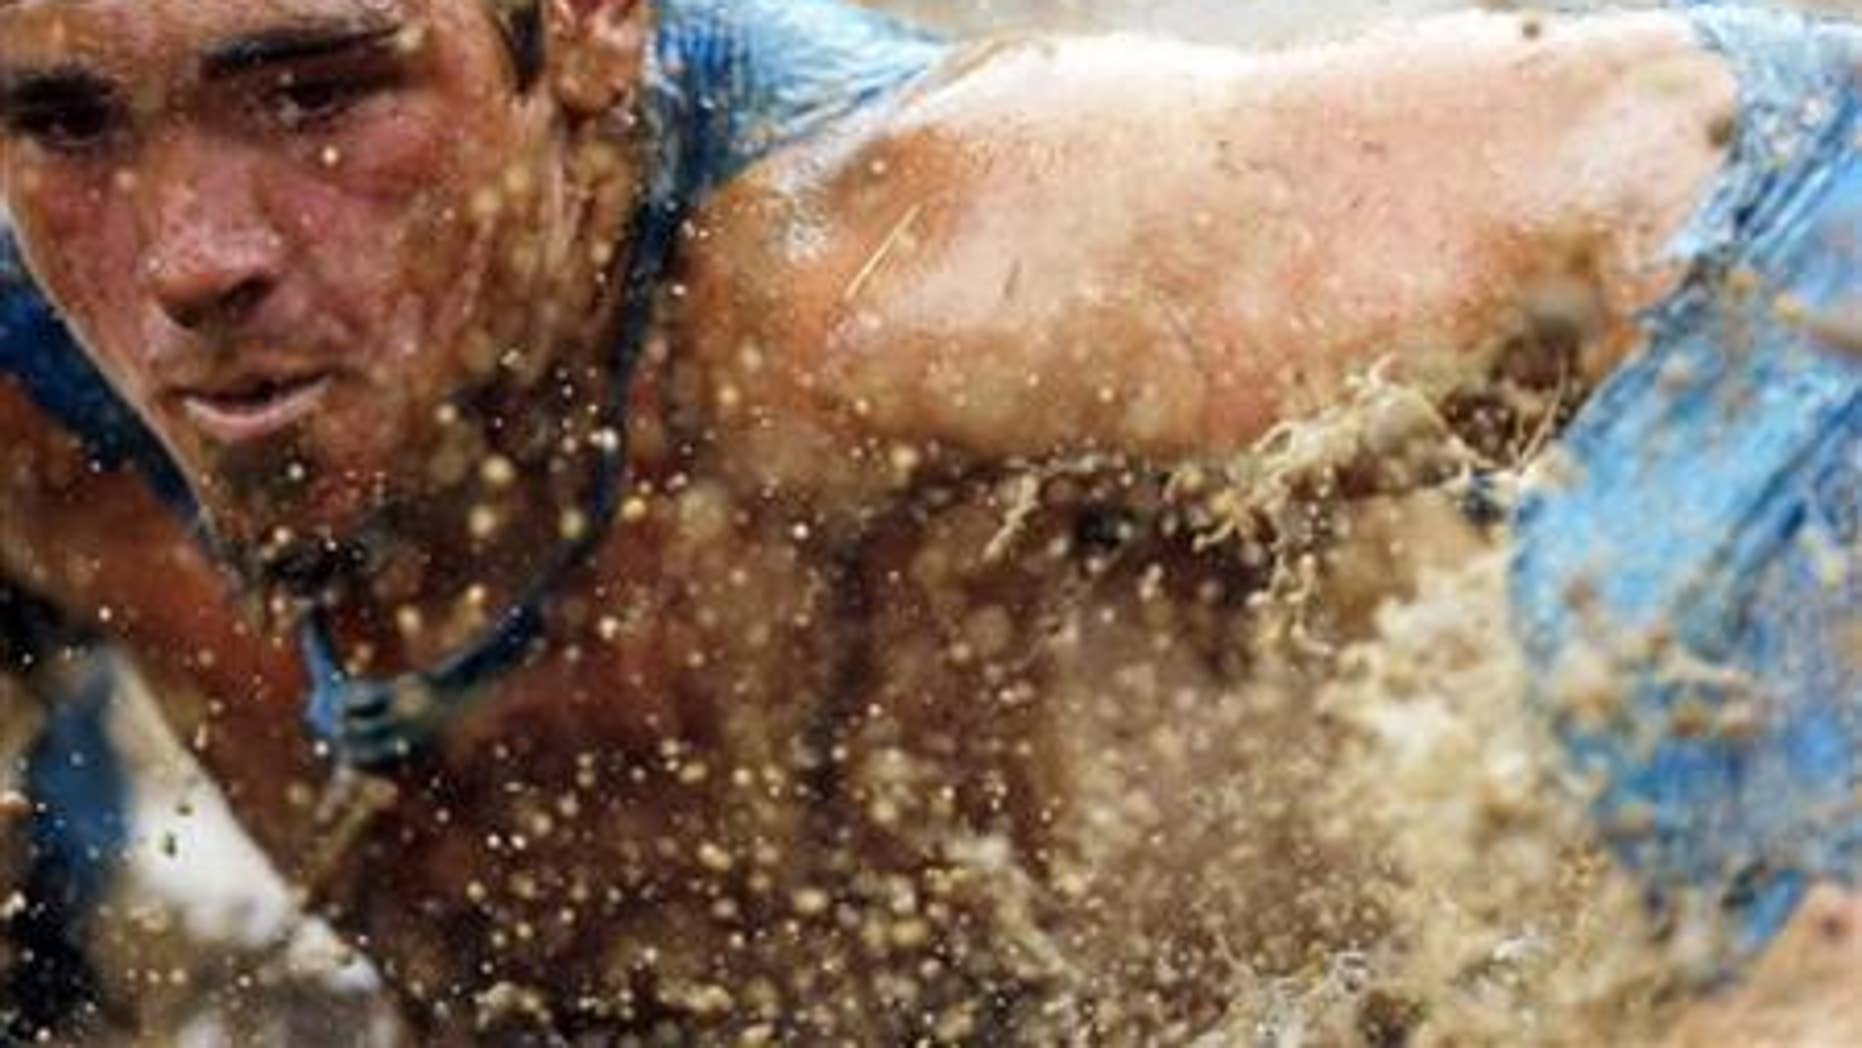 July 15, 2012: Mud flies in front of a competitor as he swims through mud underneath electrified wires during the Tough Mudder at Mt. Snow in West Dover, Vermont.